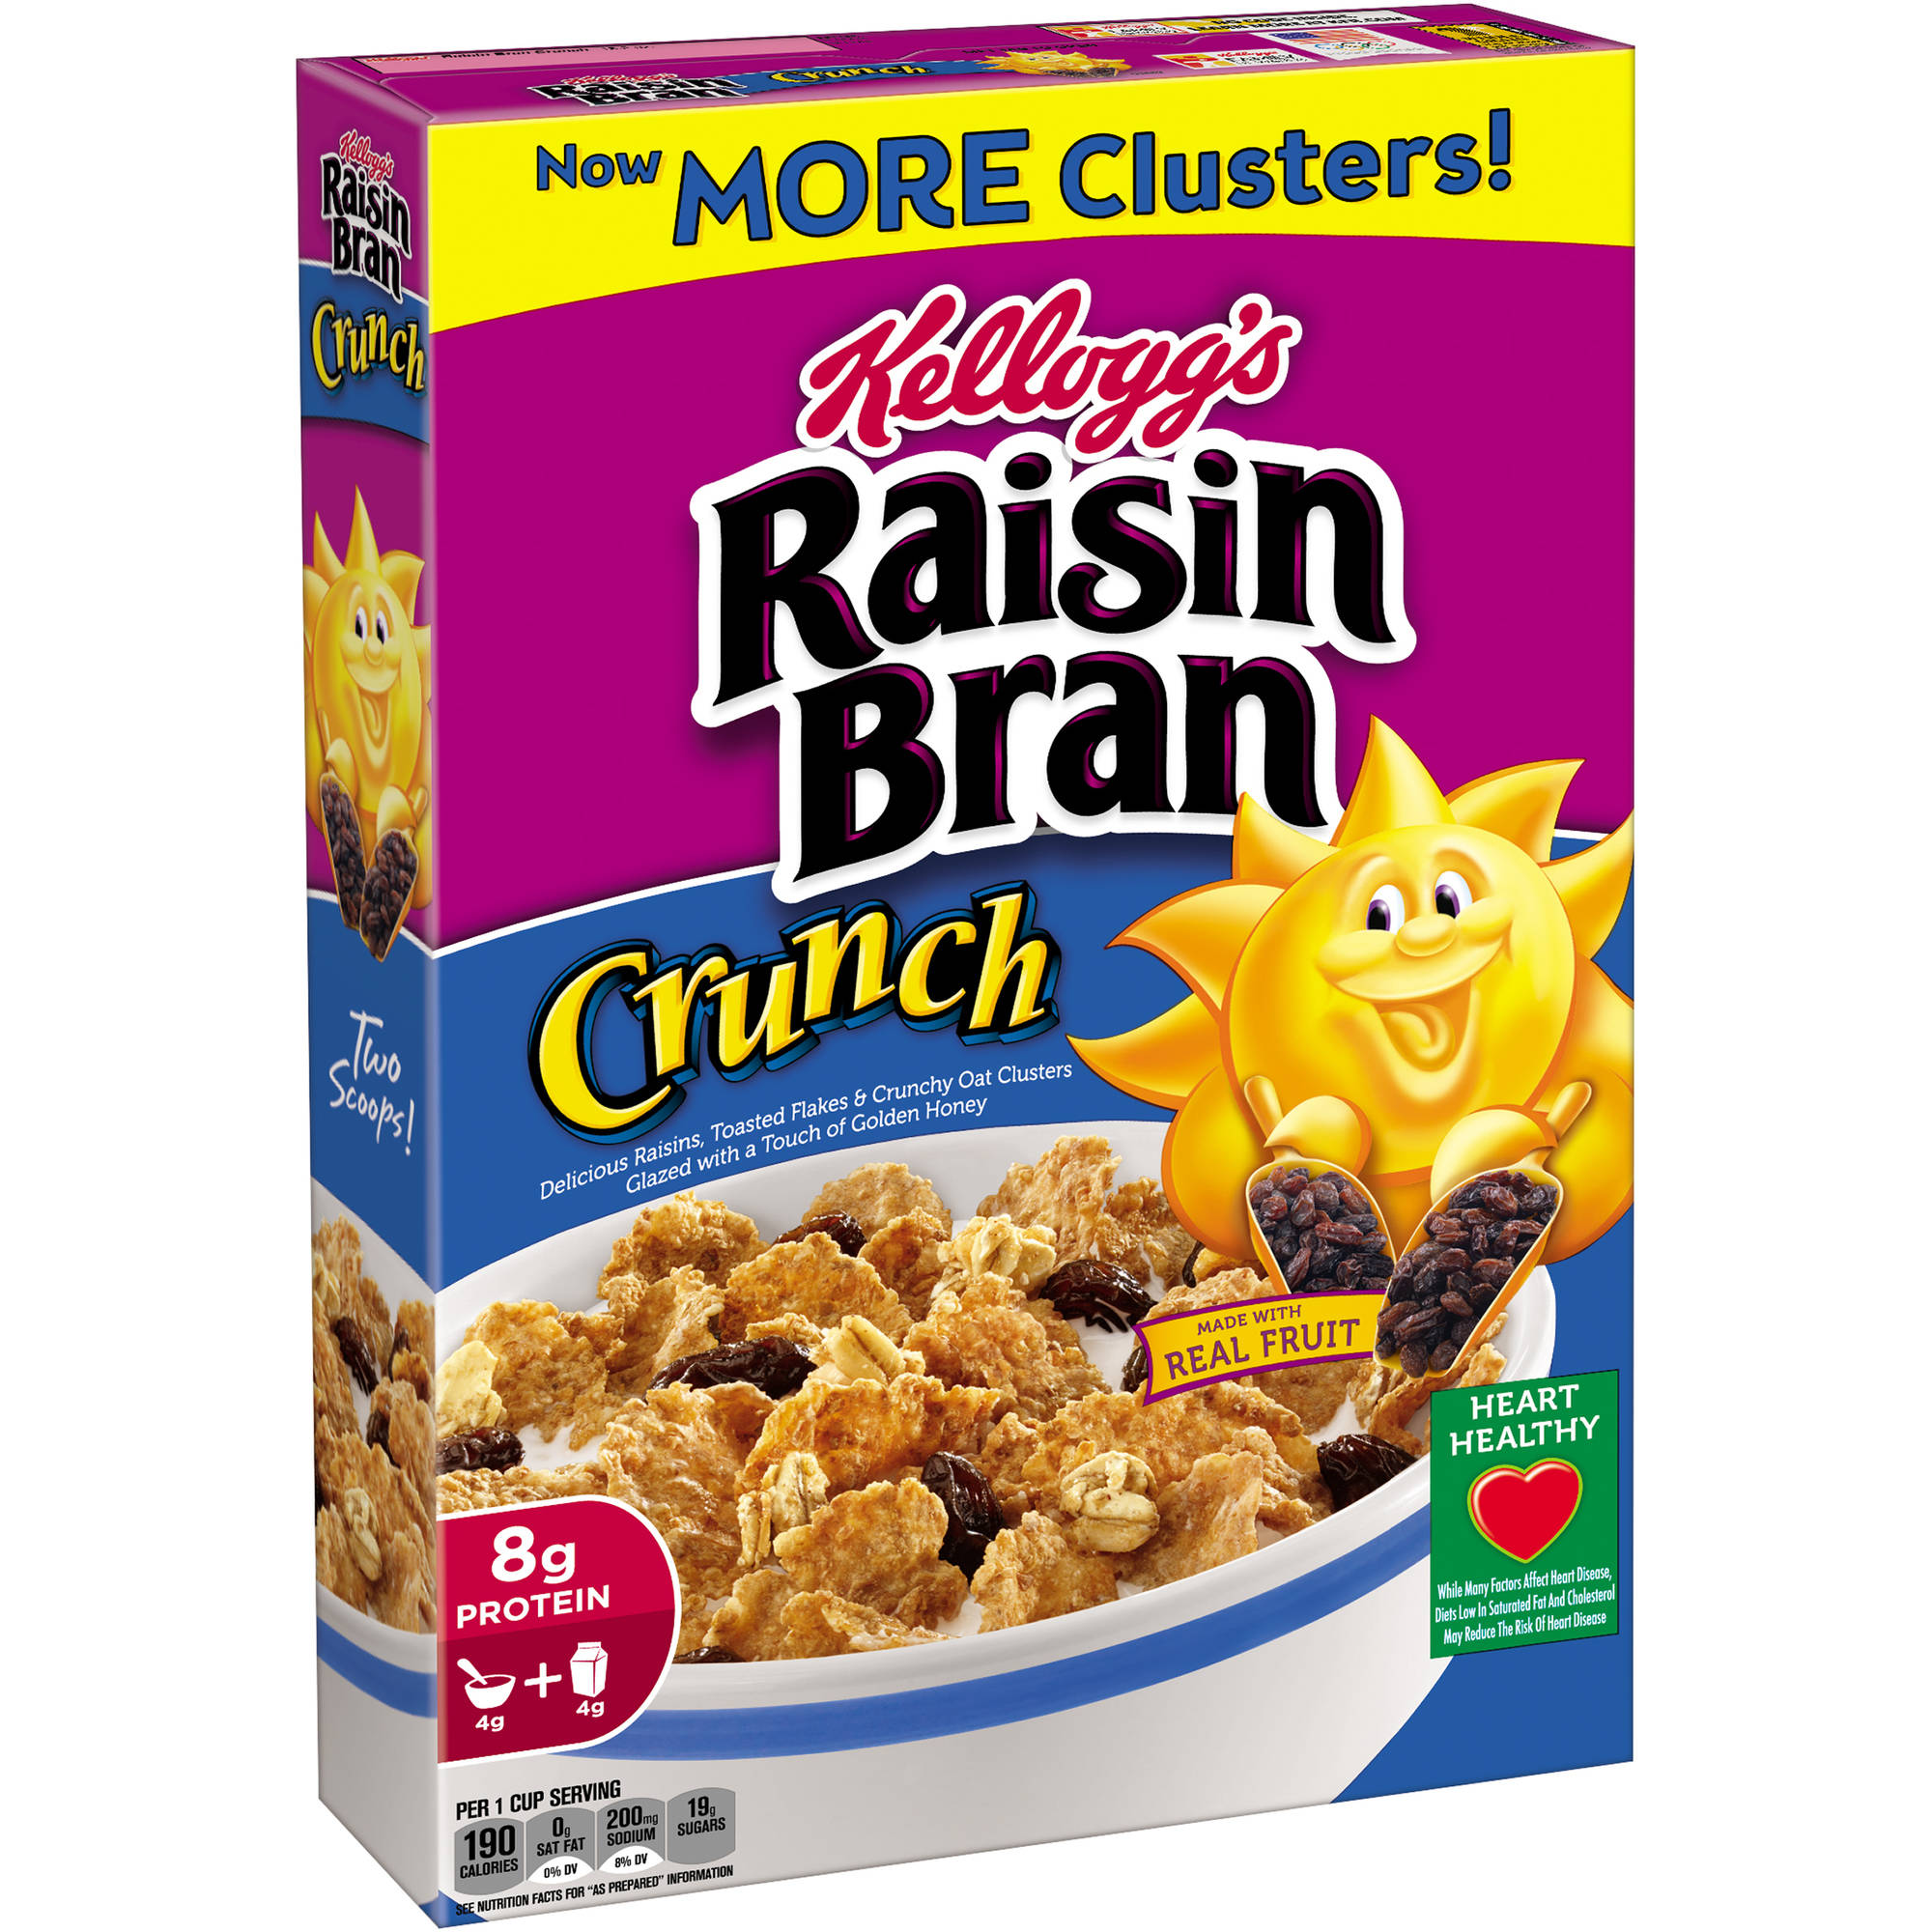 Kellogg's Raisin Bran Crunch Cold Cereal, 18.2 oz box